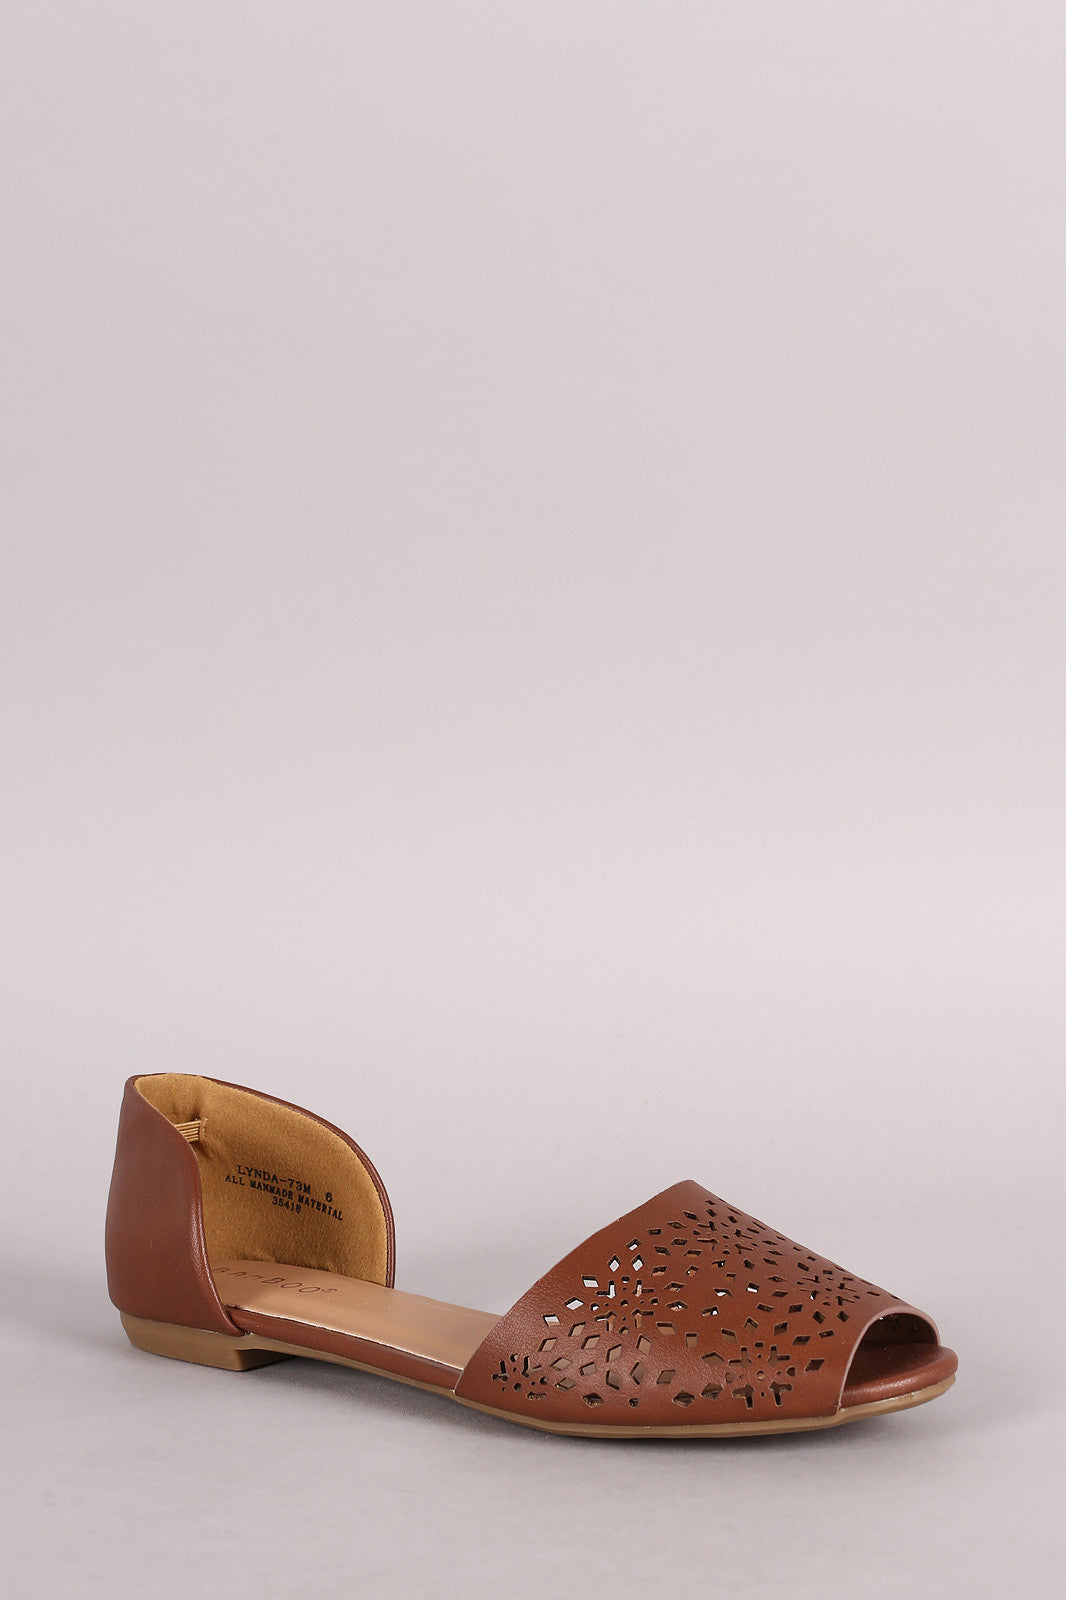 Bamboo Perforated Peep Toe Flat - Thick 'N' Curvy Shop - 2